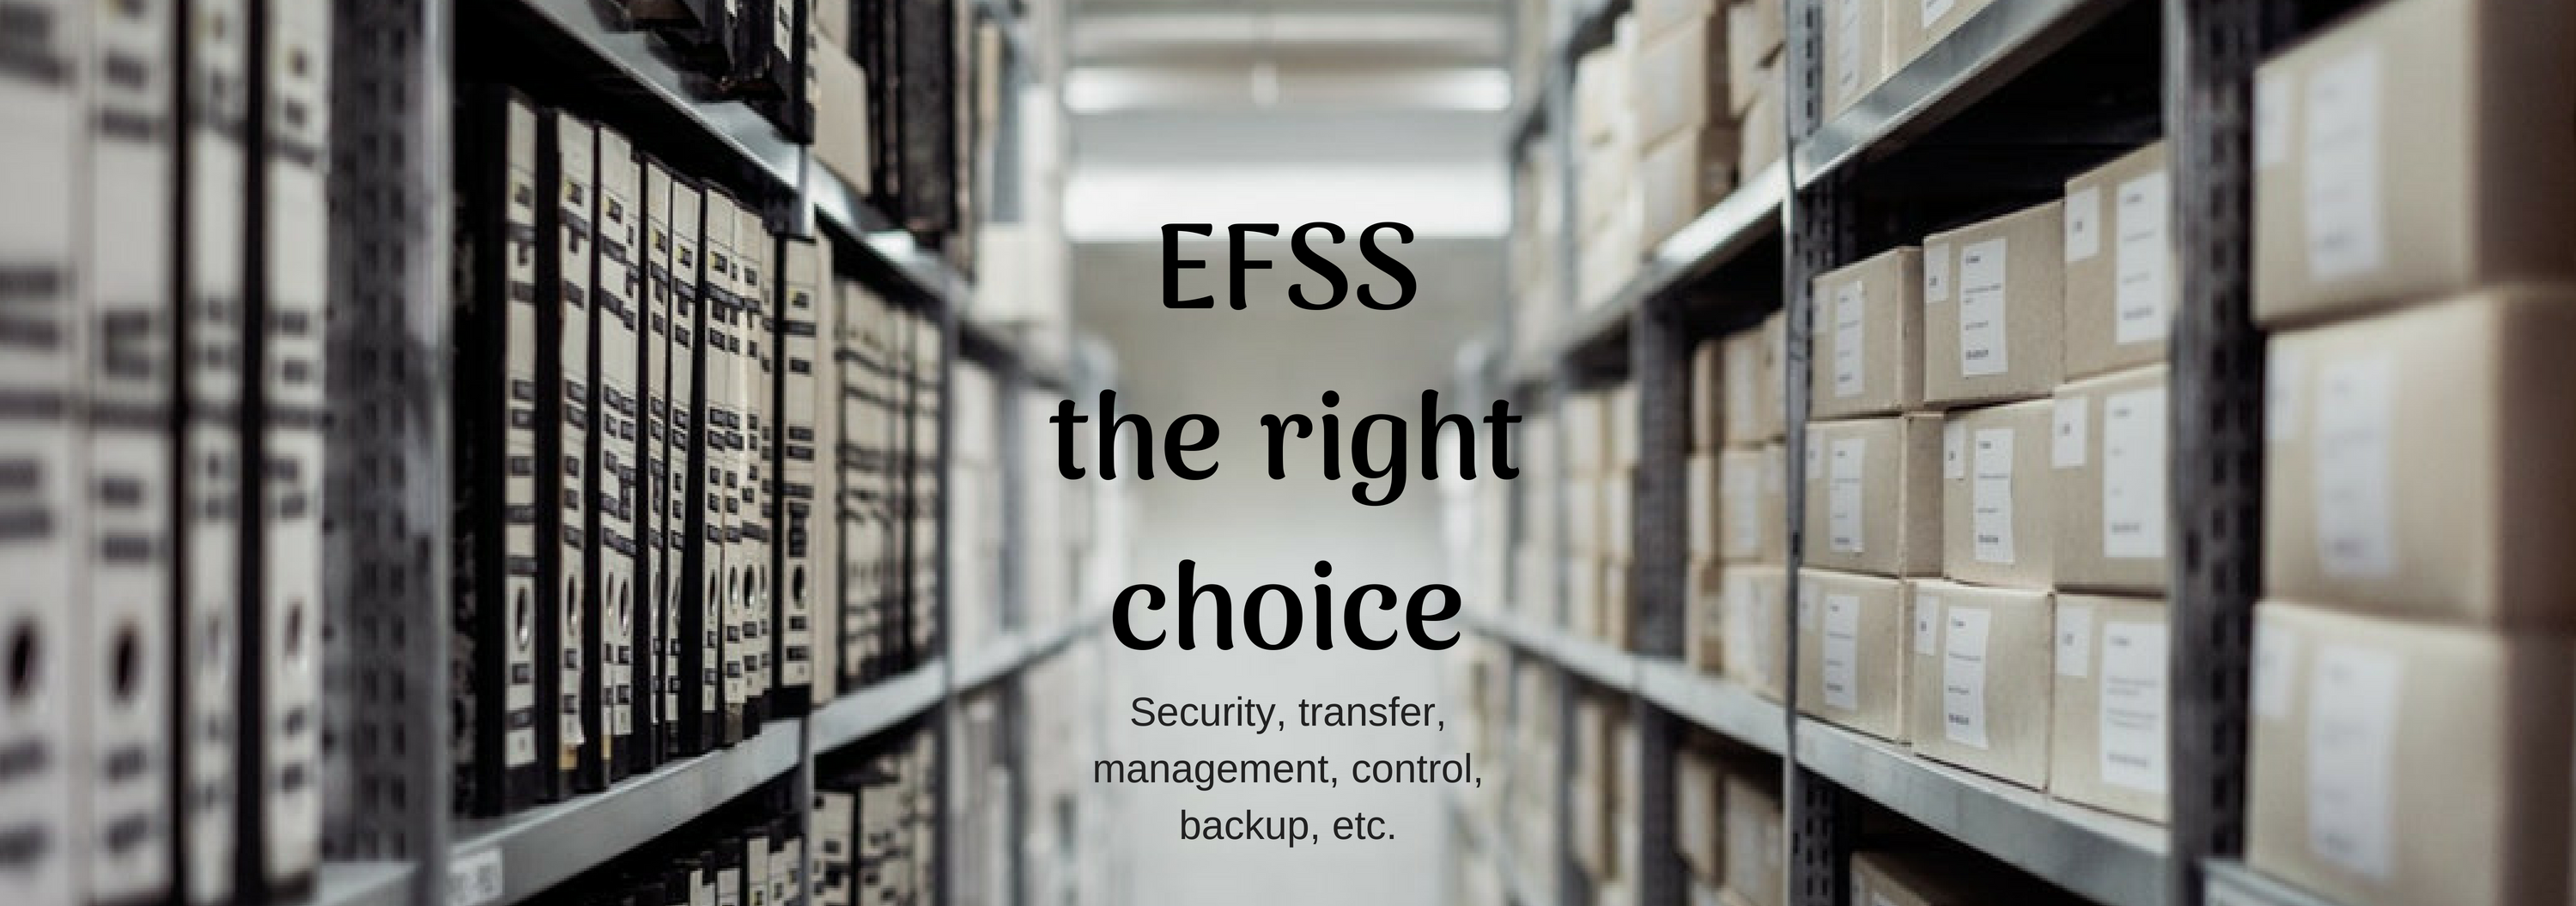 EFSS is the best choice for data security